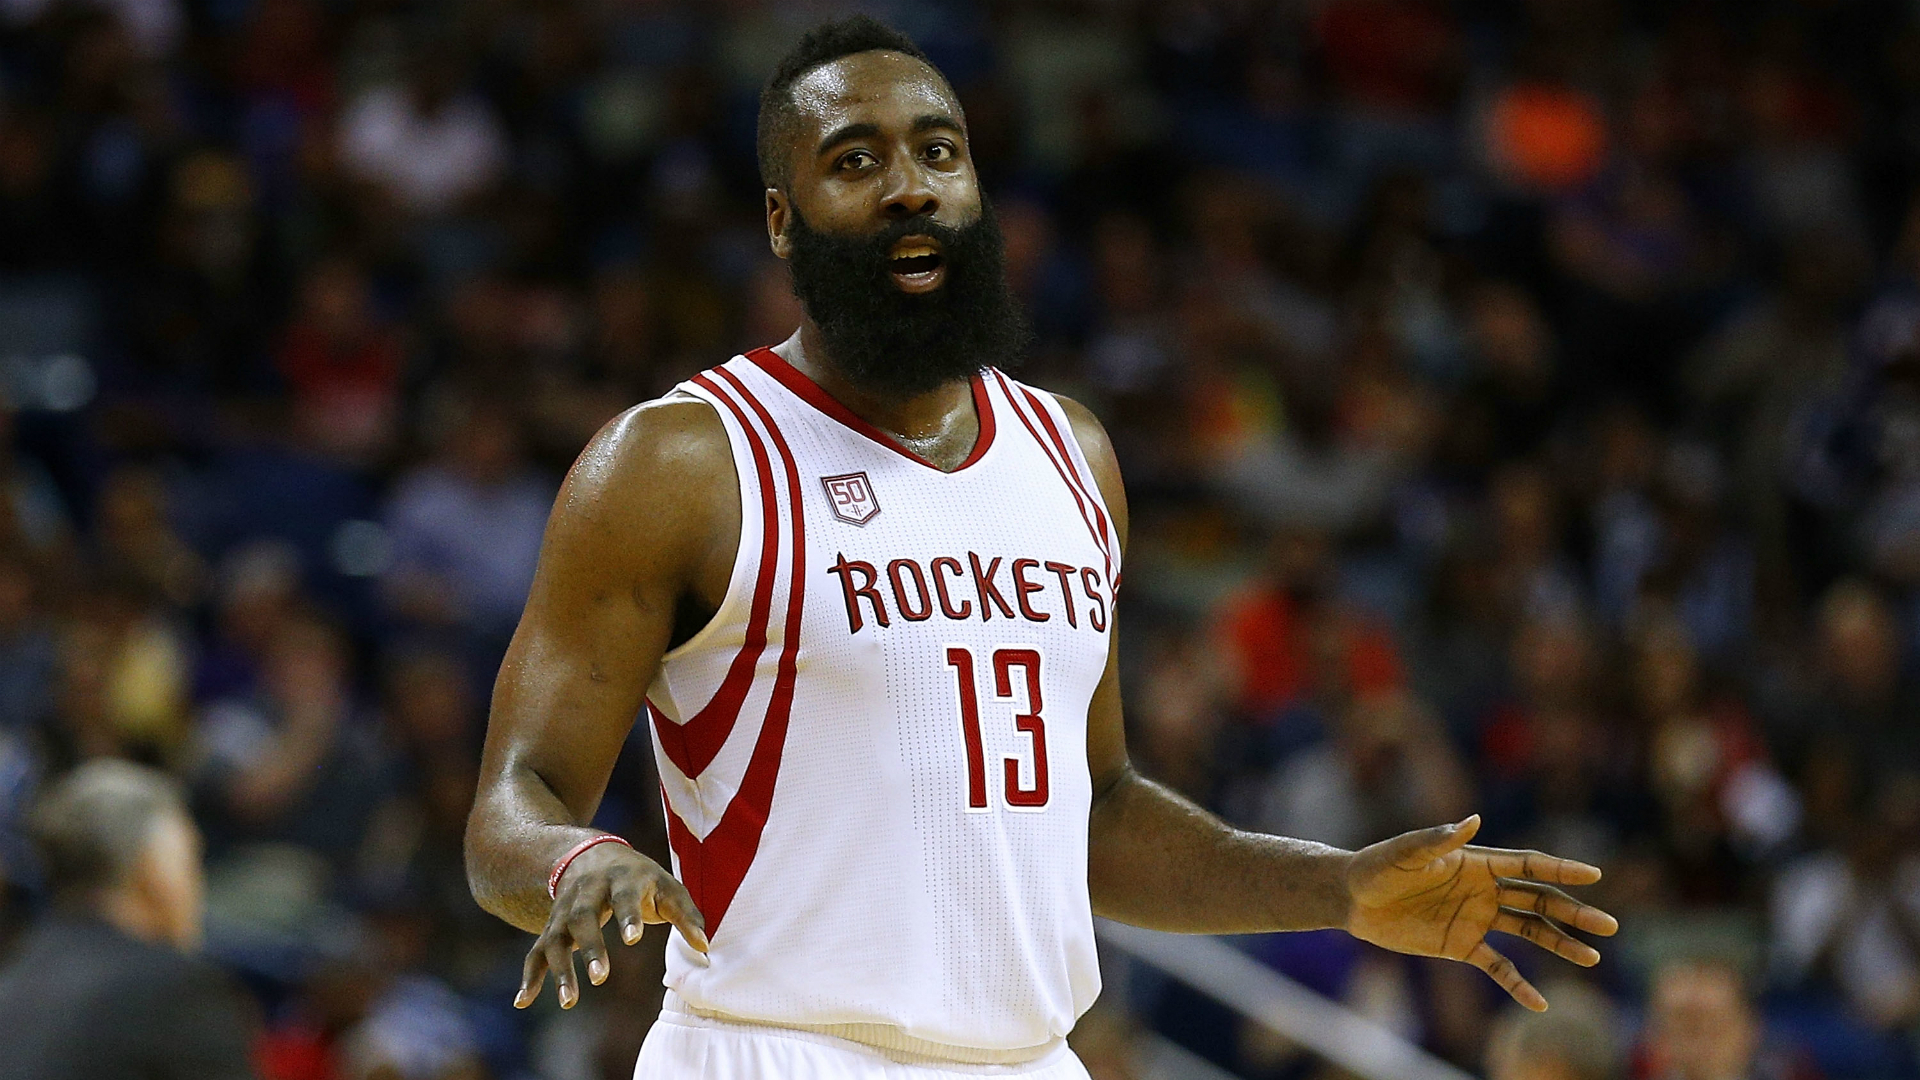 582a03992b92 James Harden injury update  Rockets star out 2 weeks with Grade-2 hamstring  strain